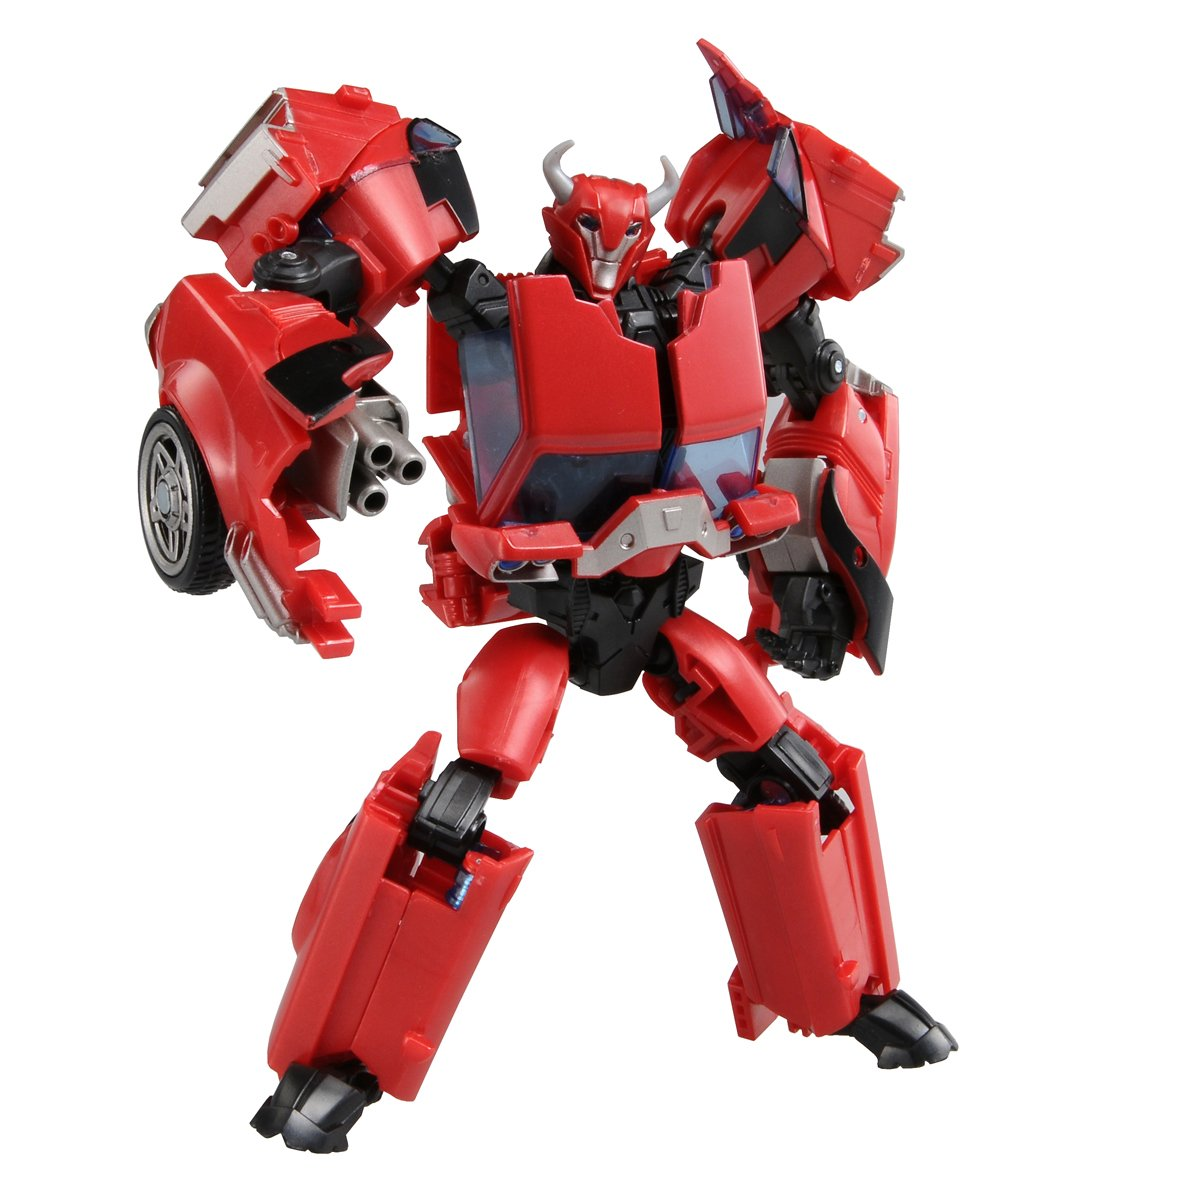 Transformer Prime First Edition Cliffjumper